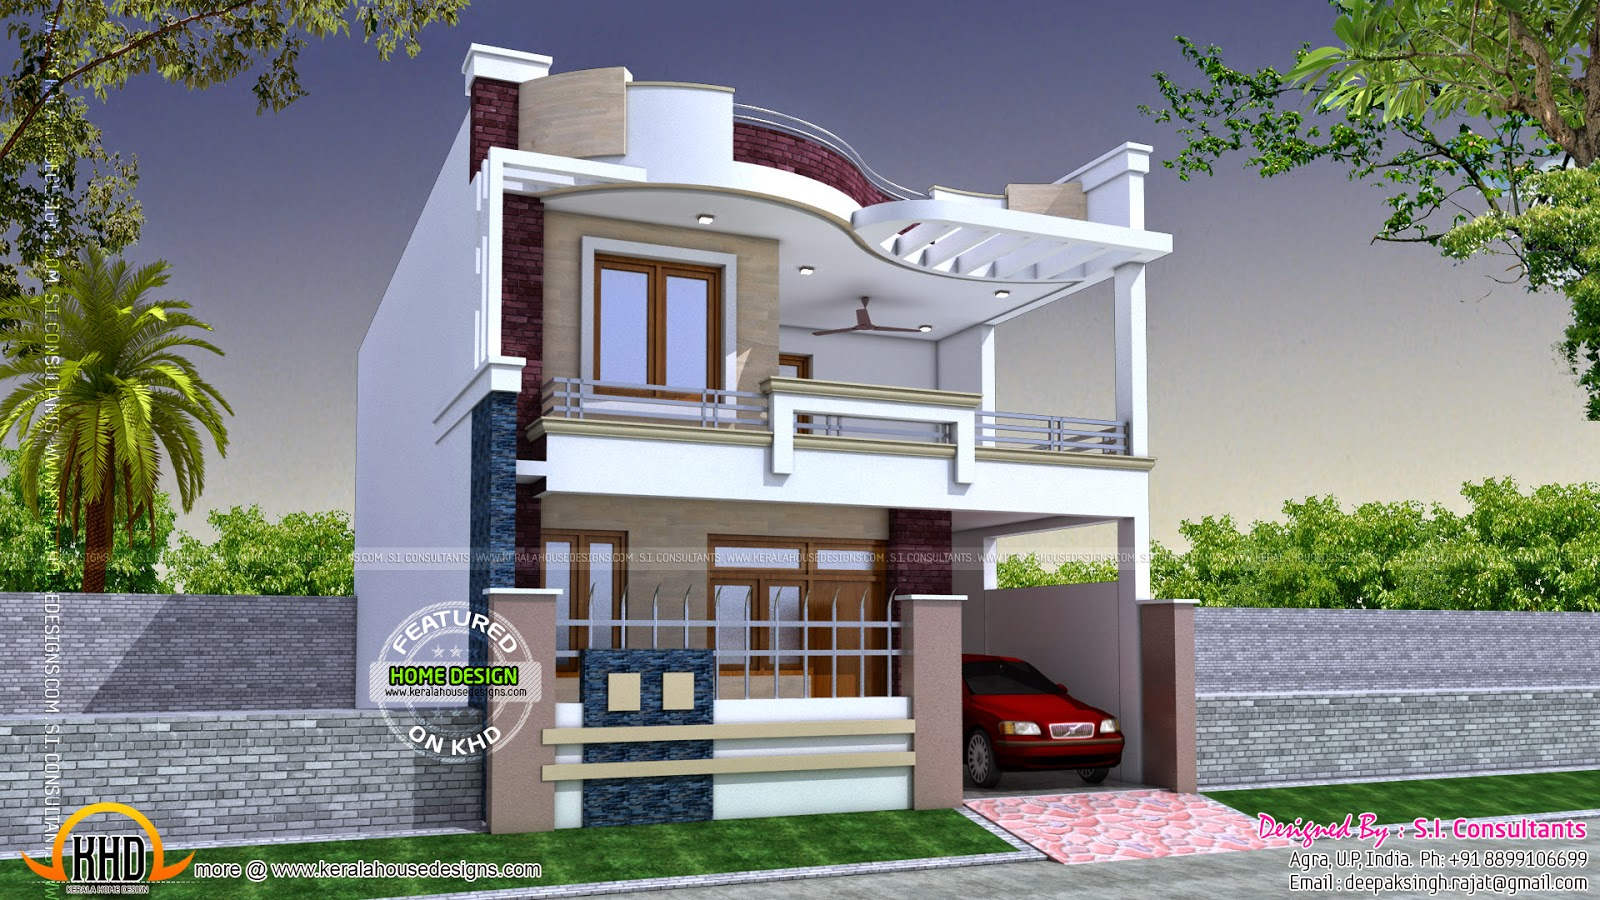 Modern indian home design kerala home design and floor plans for Houses plans and pictures